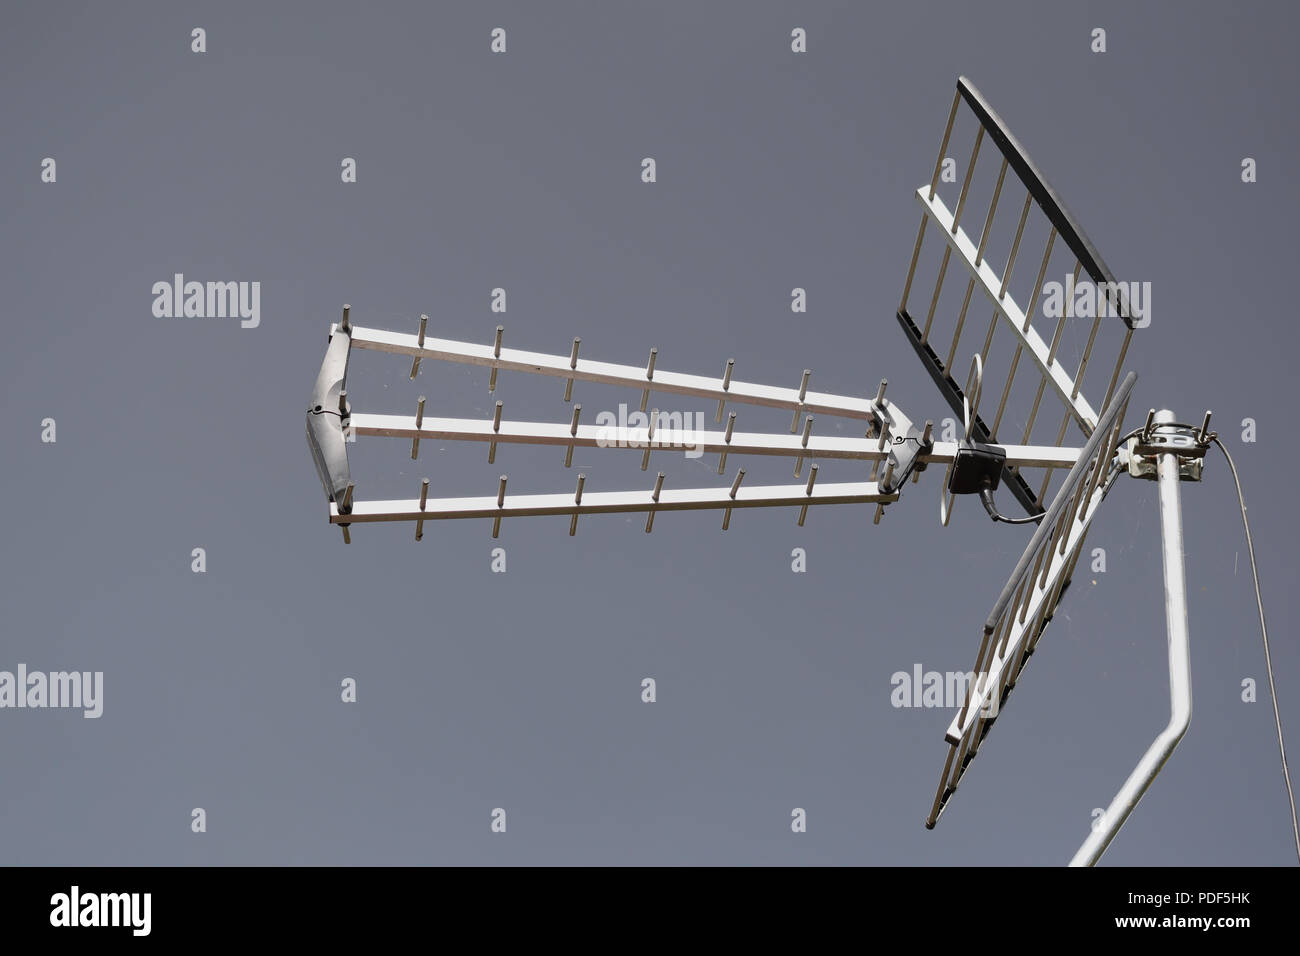 Television aerial against a clear sky background - Stock Image